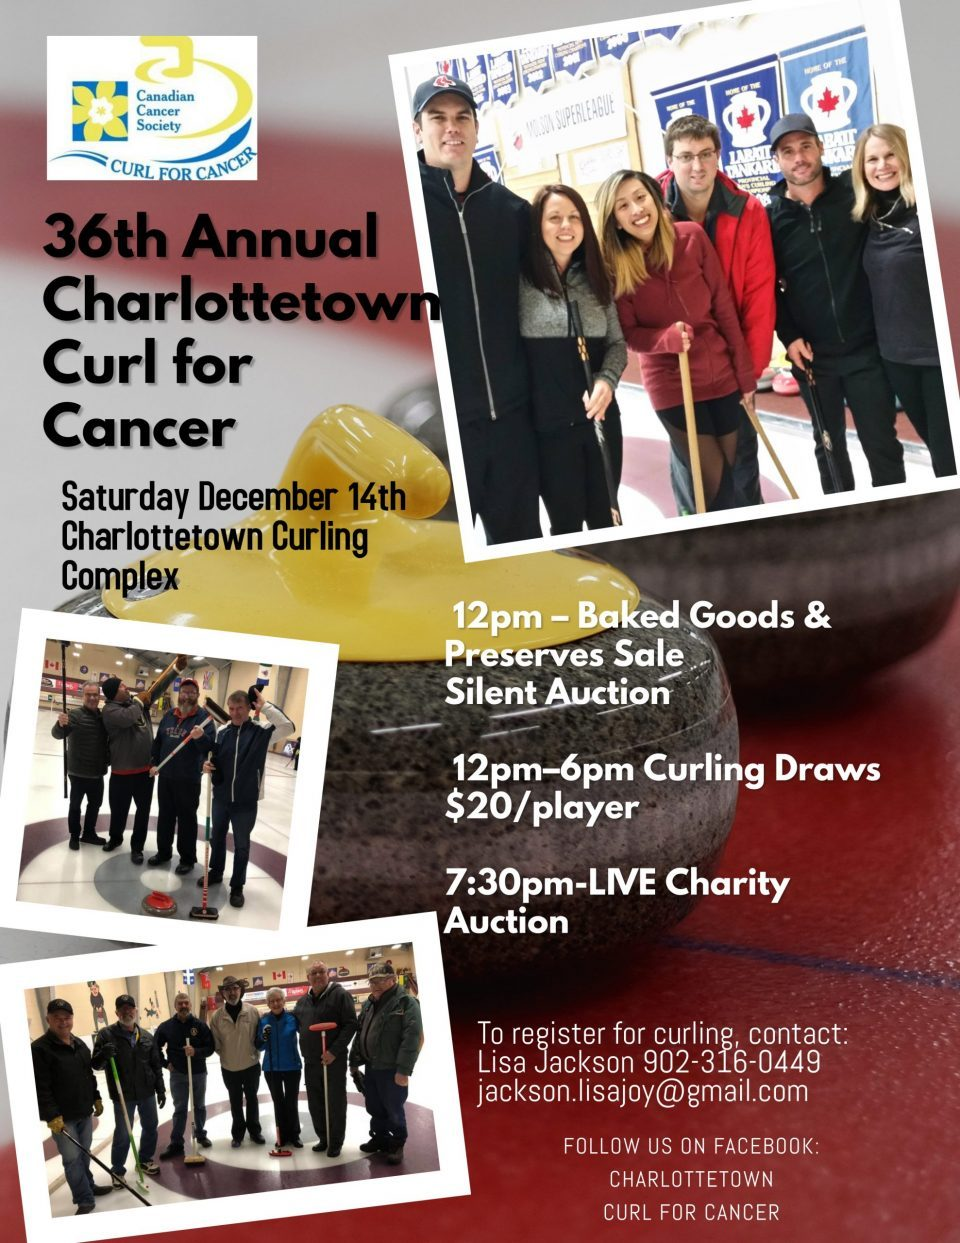 Cornwall teams Curl for Cancer at Ch'town on Sat.!